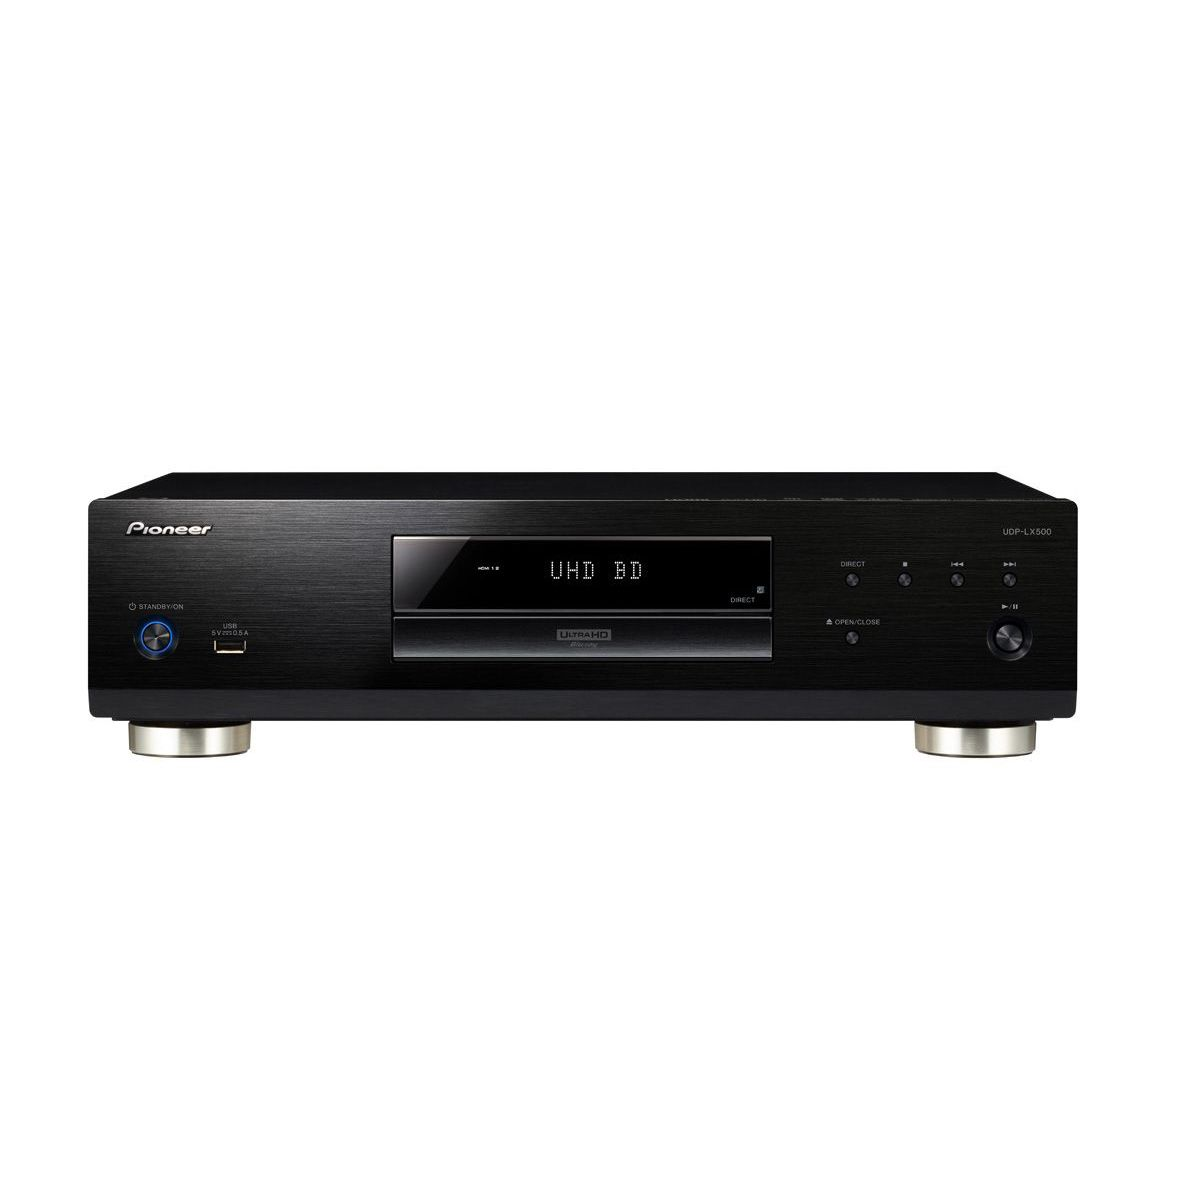 Best 4k Blu Ray Player 2020.The Best Blu Ray Player Deals 2019 What Hi Fi